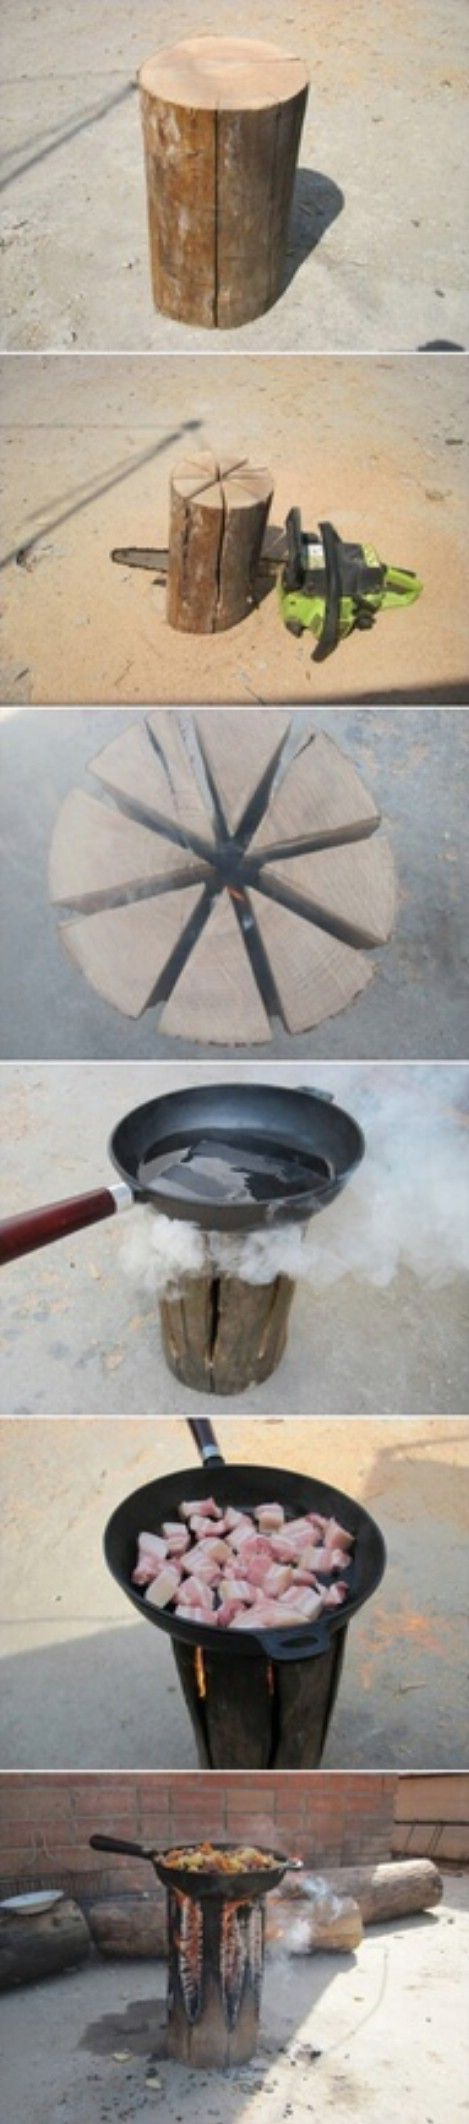 Top 33 Most Creative Camping DIY Projects and Clever Ideas - Page 4 of 4 - DIY & Crafts